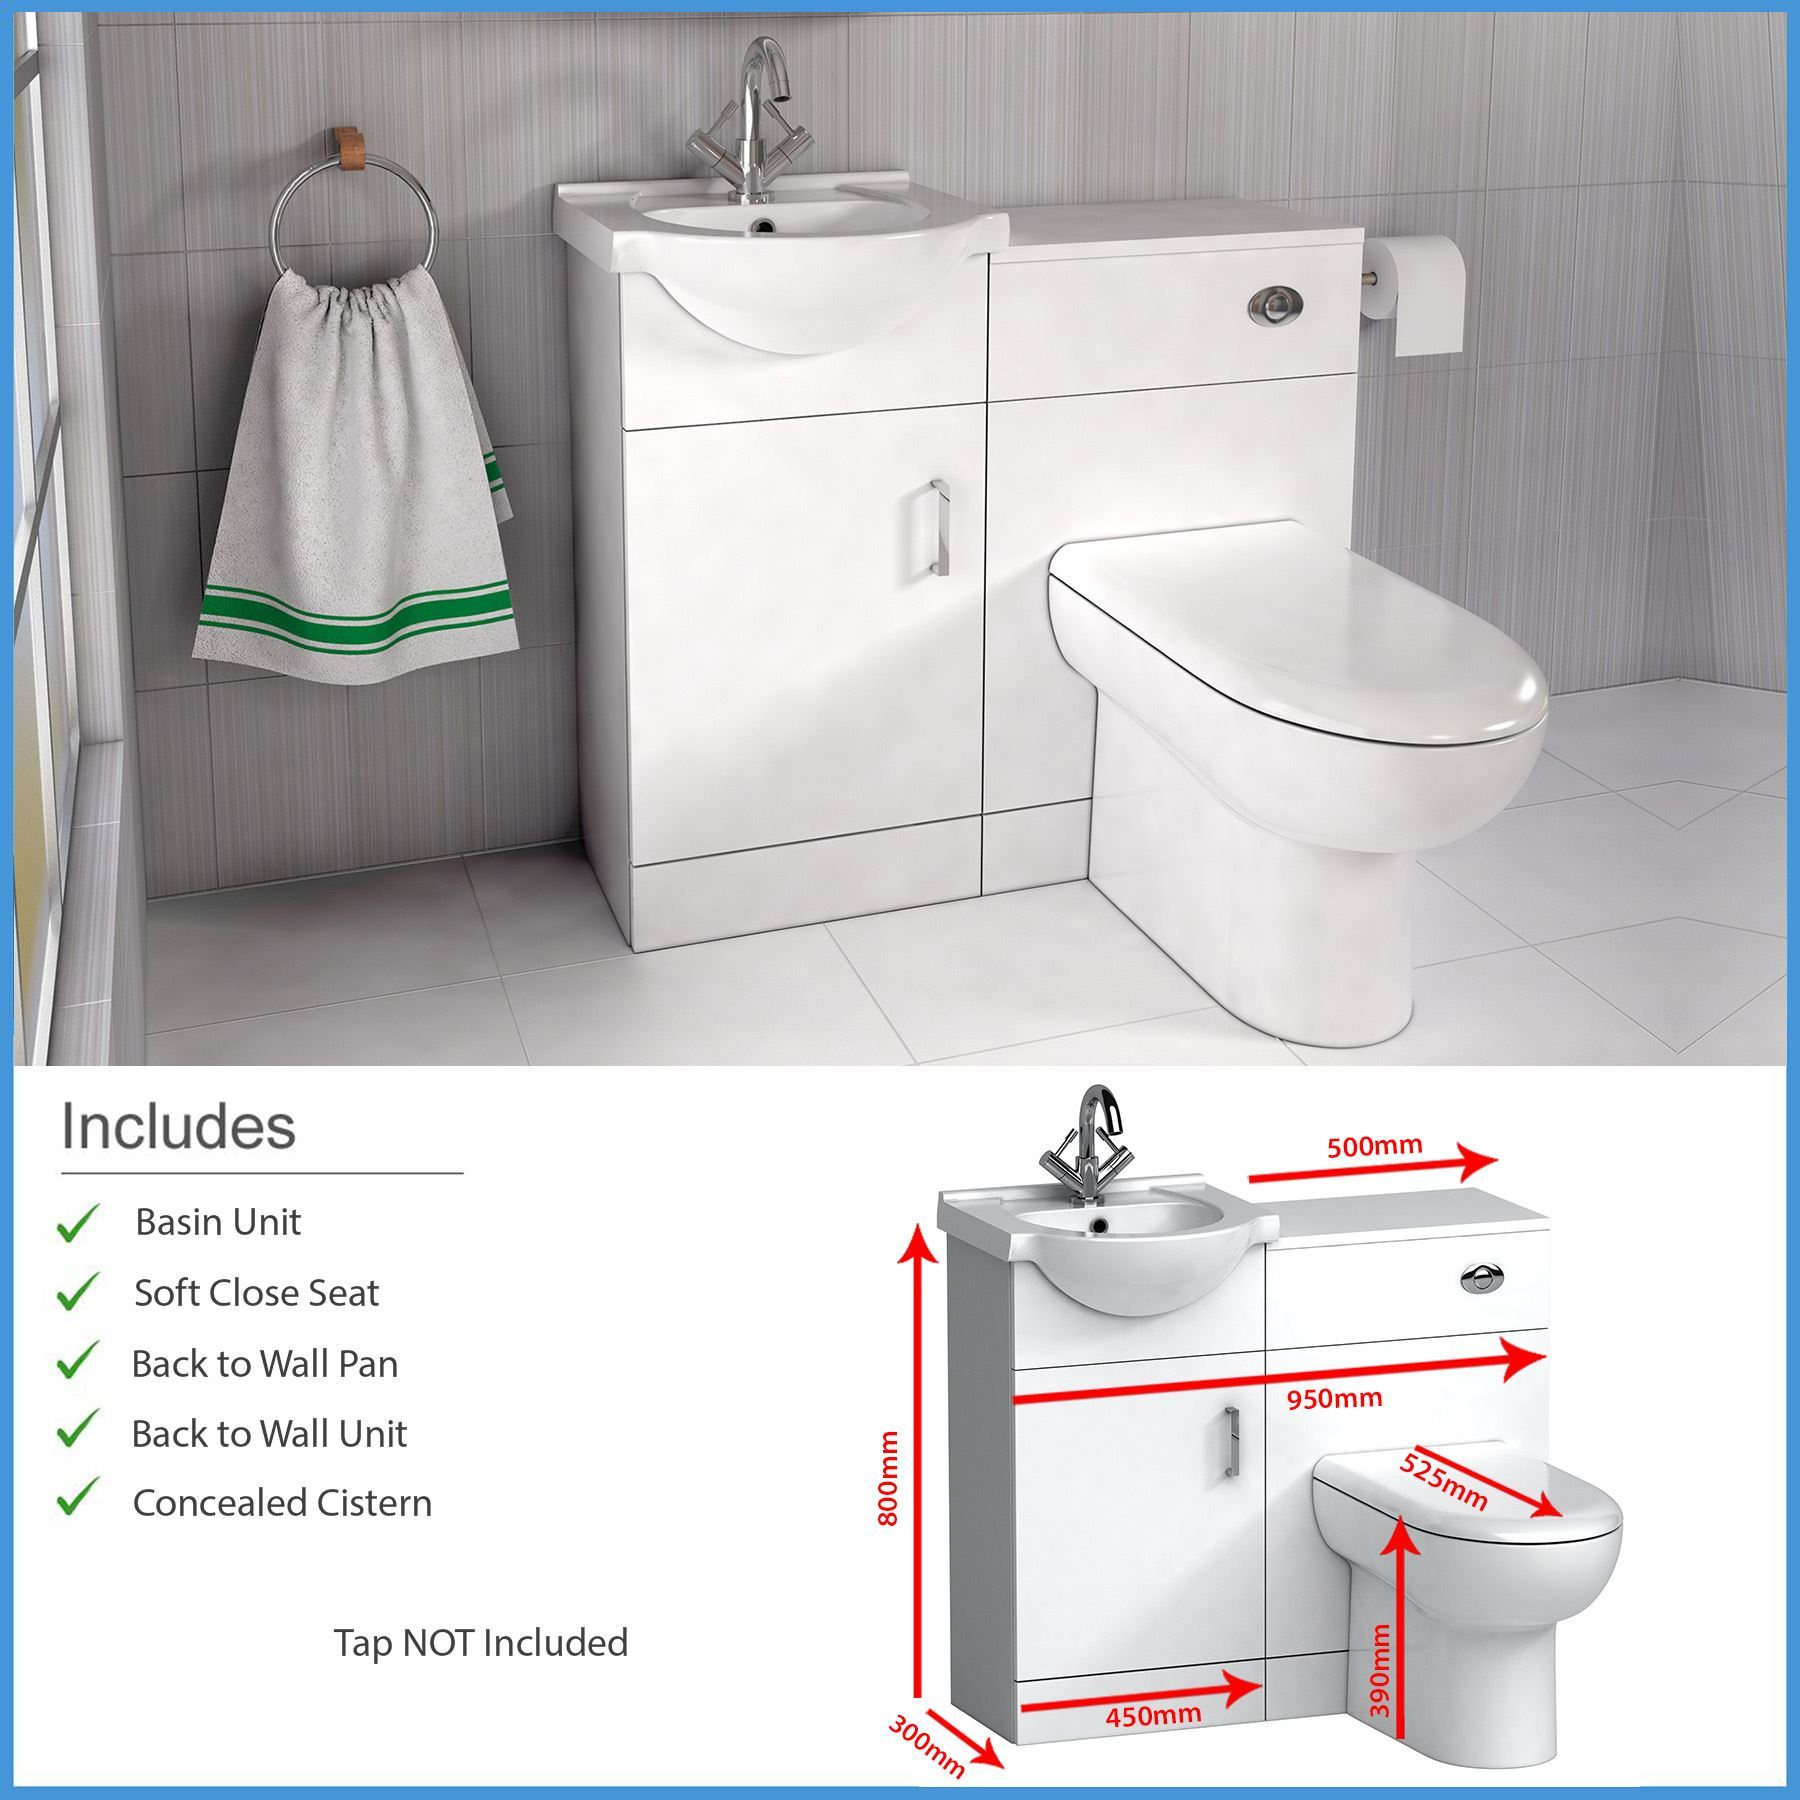 high gloss white bathroom furniture suite vanity unit cabinet wc unit btw toilet ebay. Black Bedroom Furniture Sets. Home Design Ideas